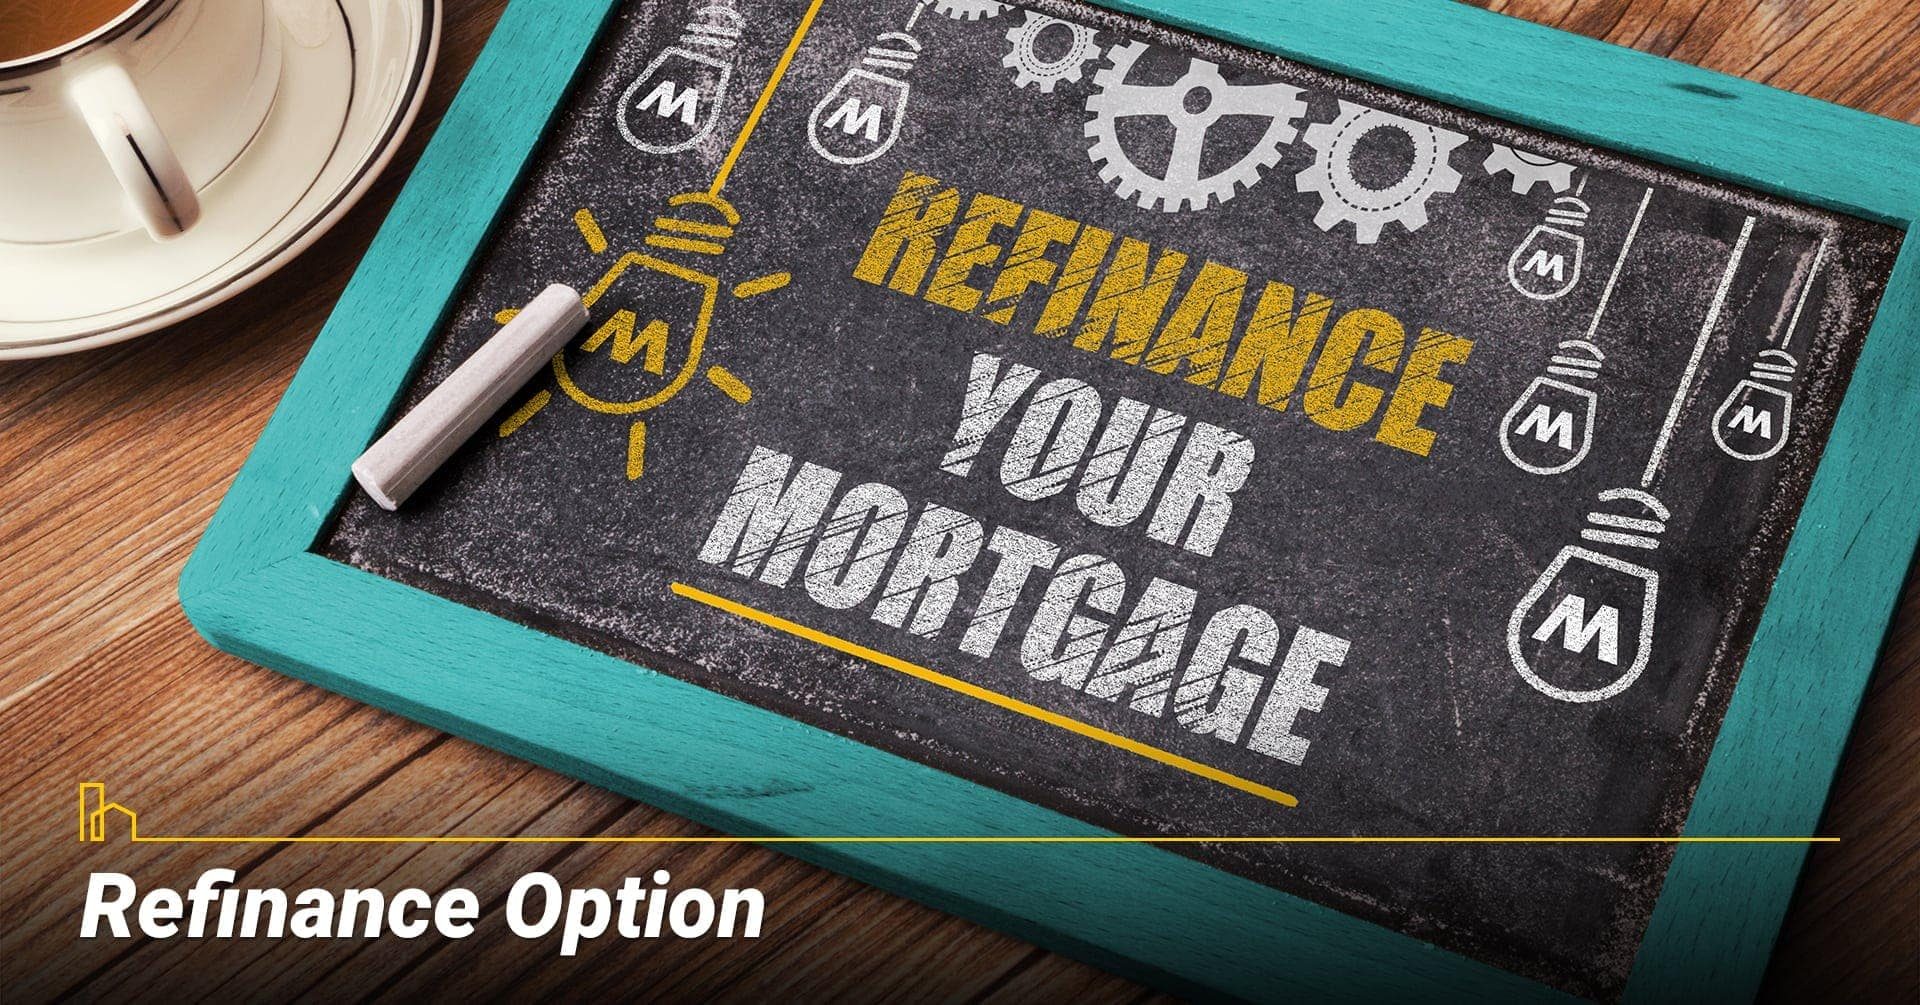 Is There a Refinance Option? ways to refinance your mortgage